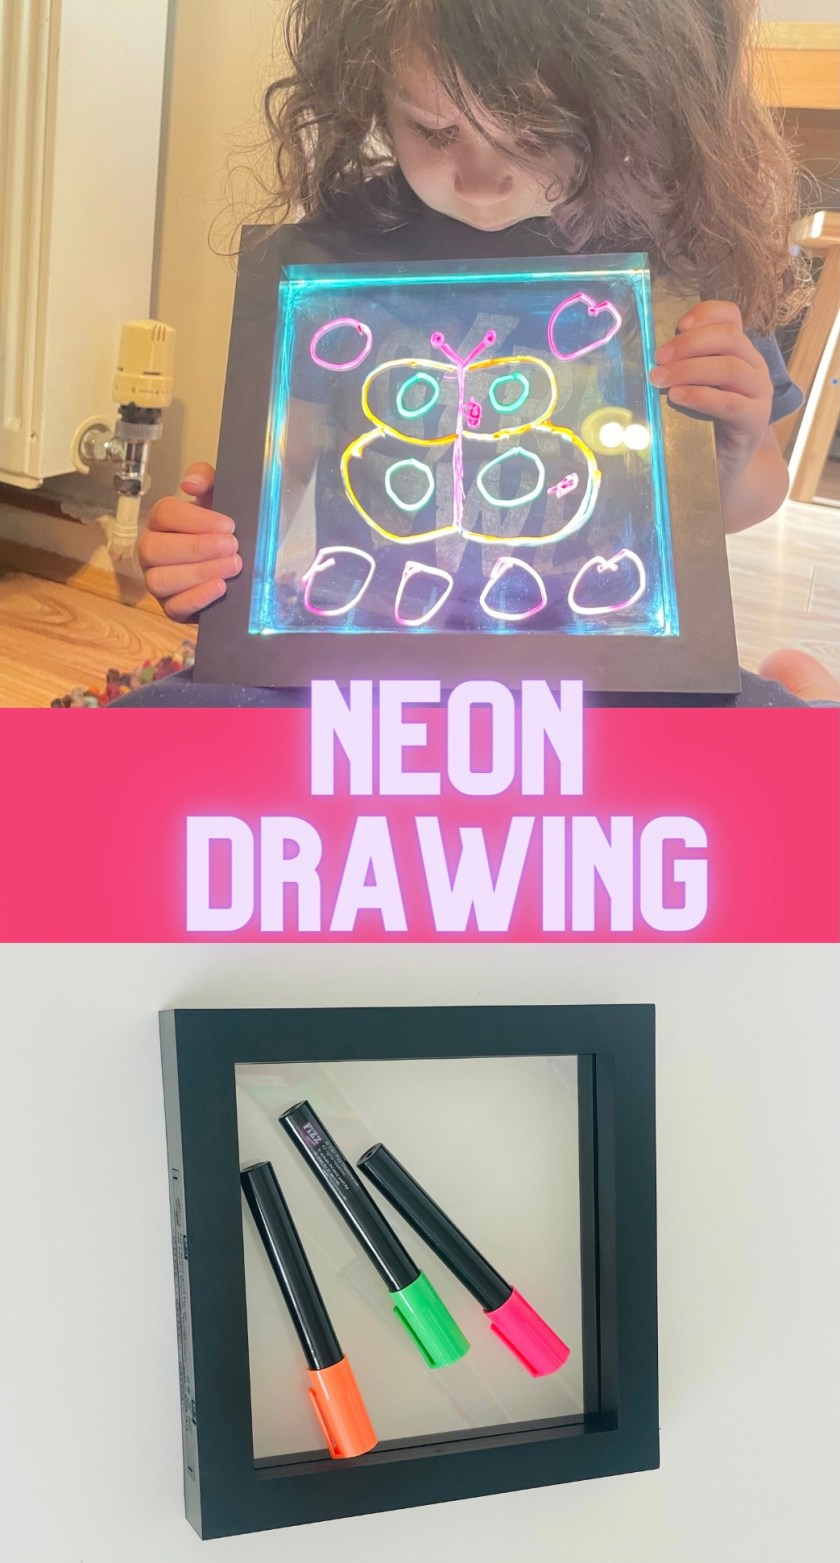 Neon message writing board or Neon drawing board for sensory play and mark making activities with kids